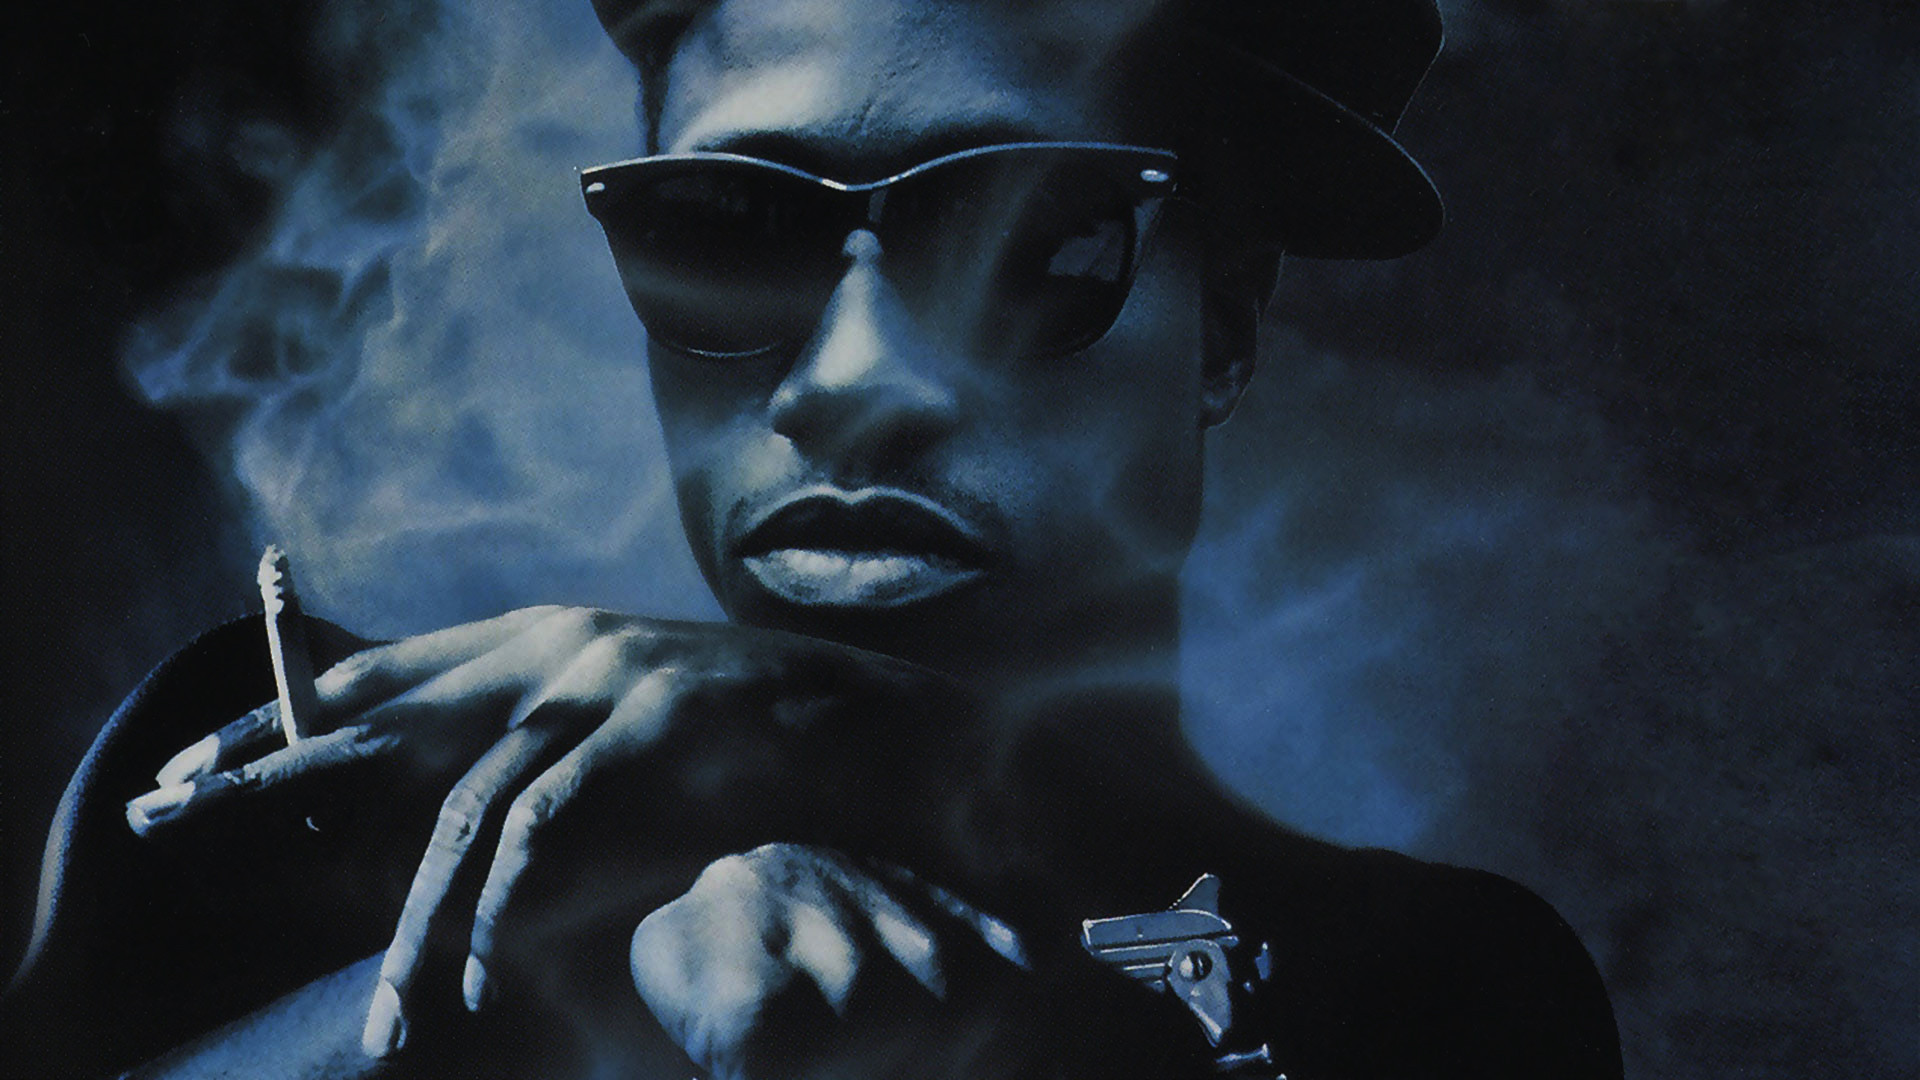 ...characters like Nino Brown became idols to thousands of young black men pursuing rap dreams. -